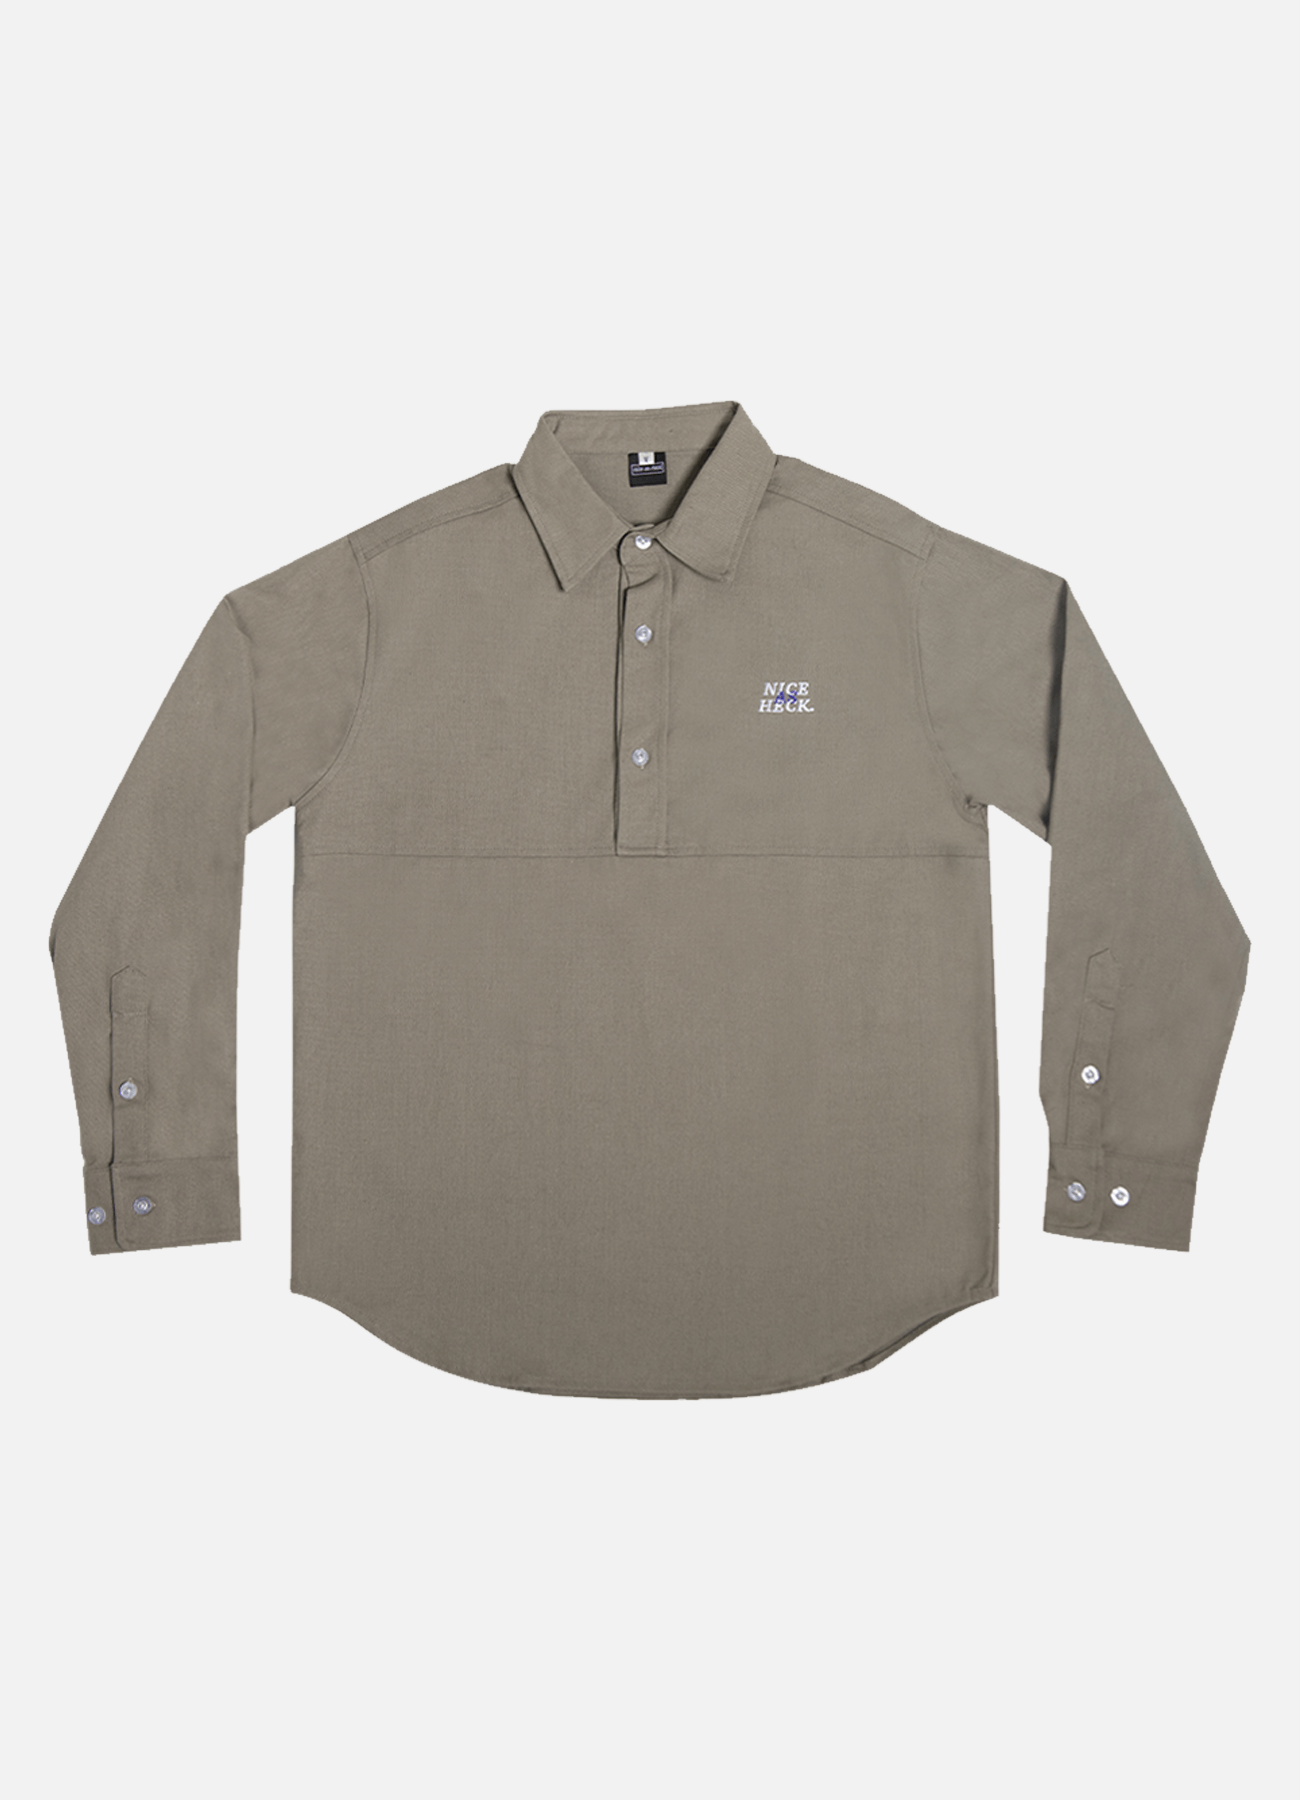 Down n' Dirty Workshirt